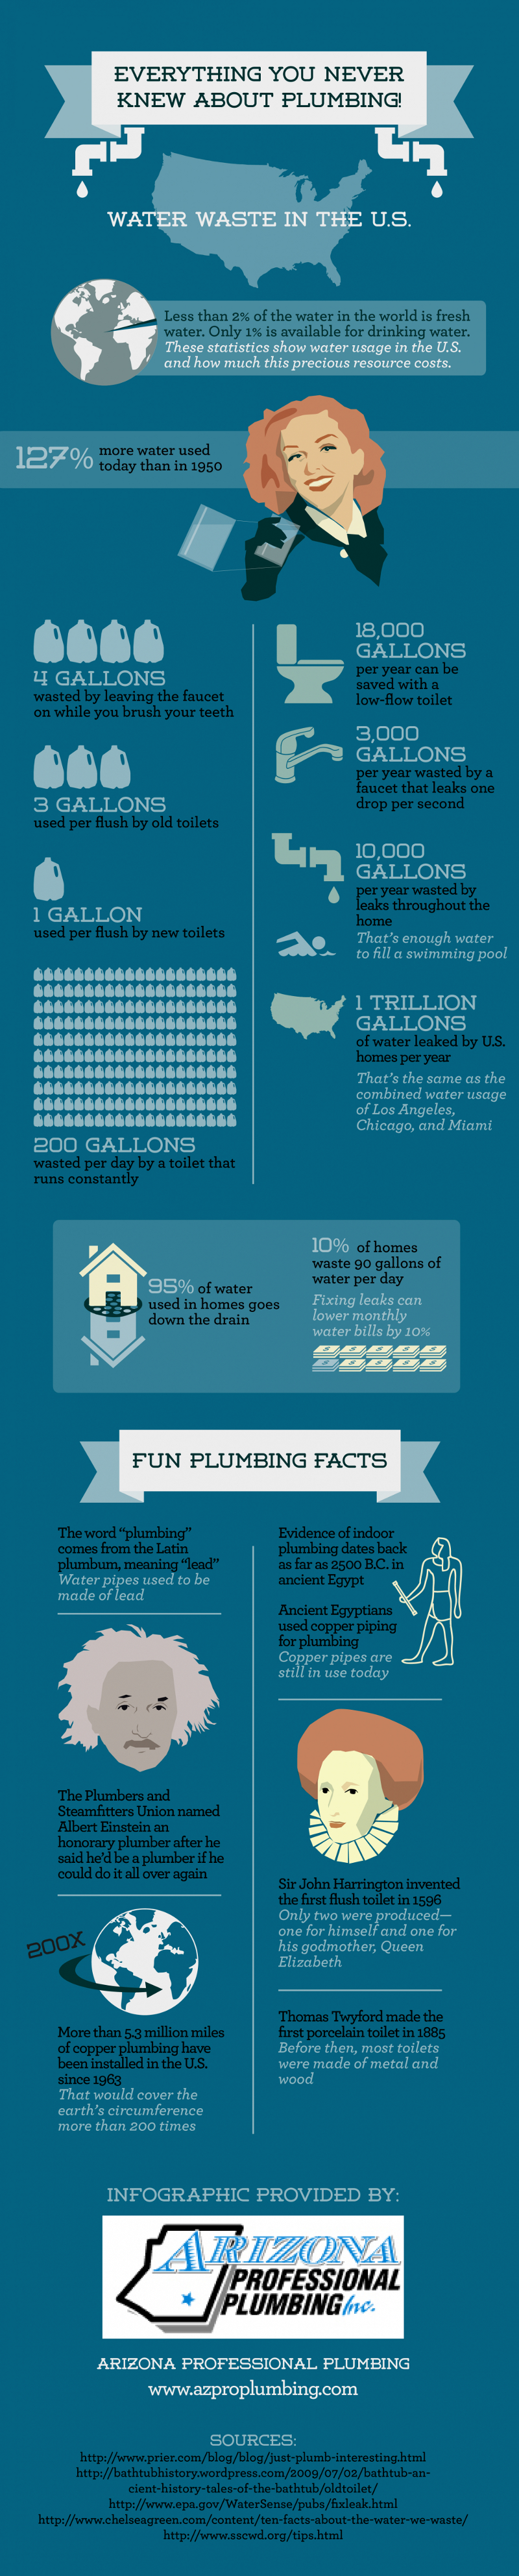 Interesting Facts About Plumbing